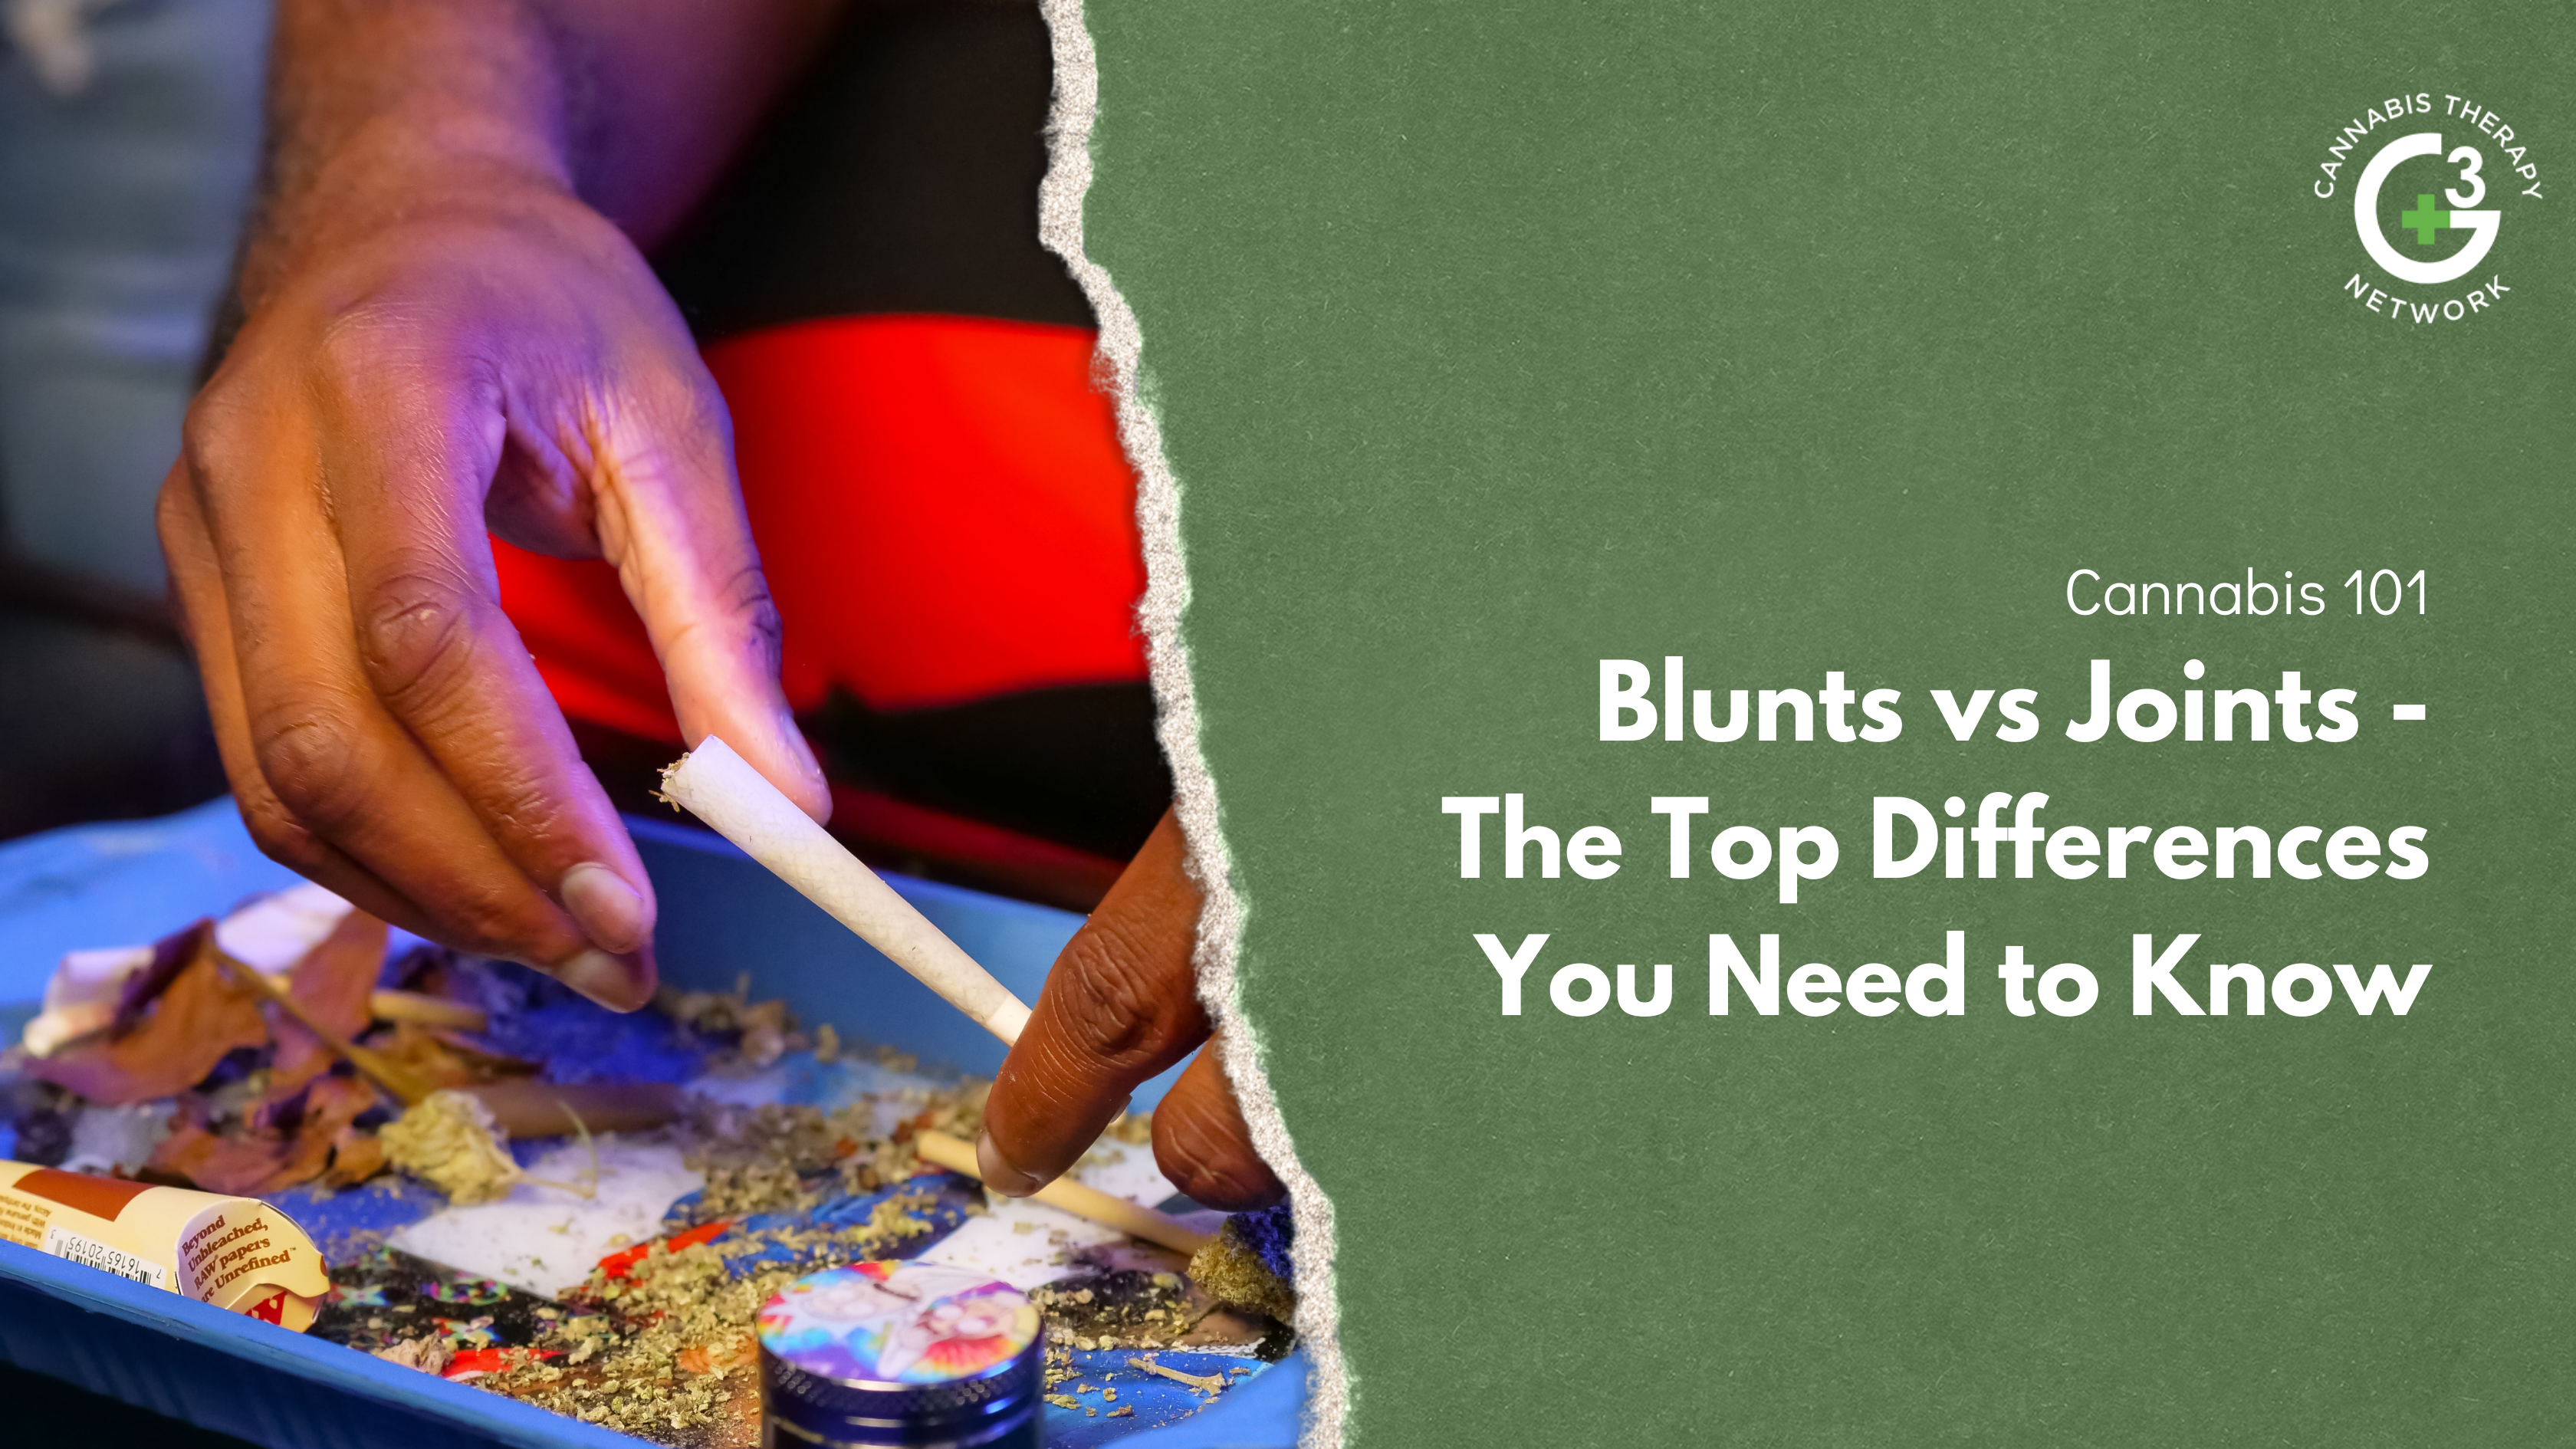 Blunts vs Joints - The Top Differences You Need to Know